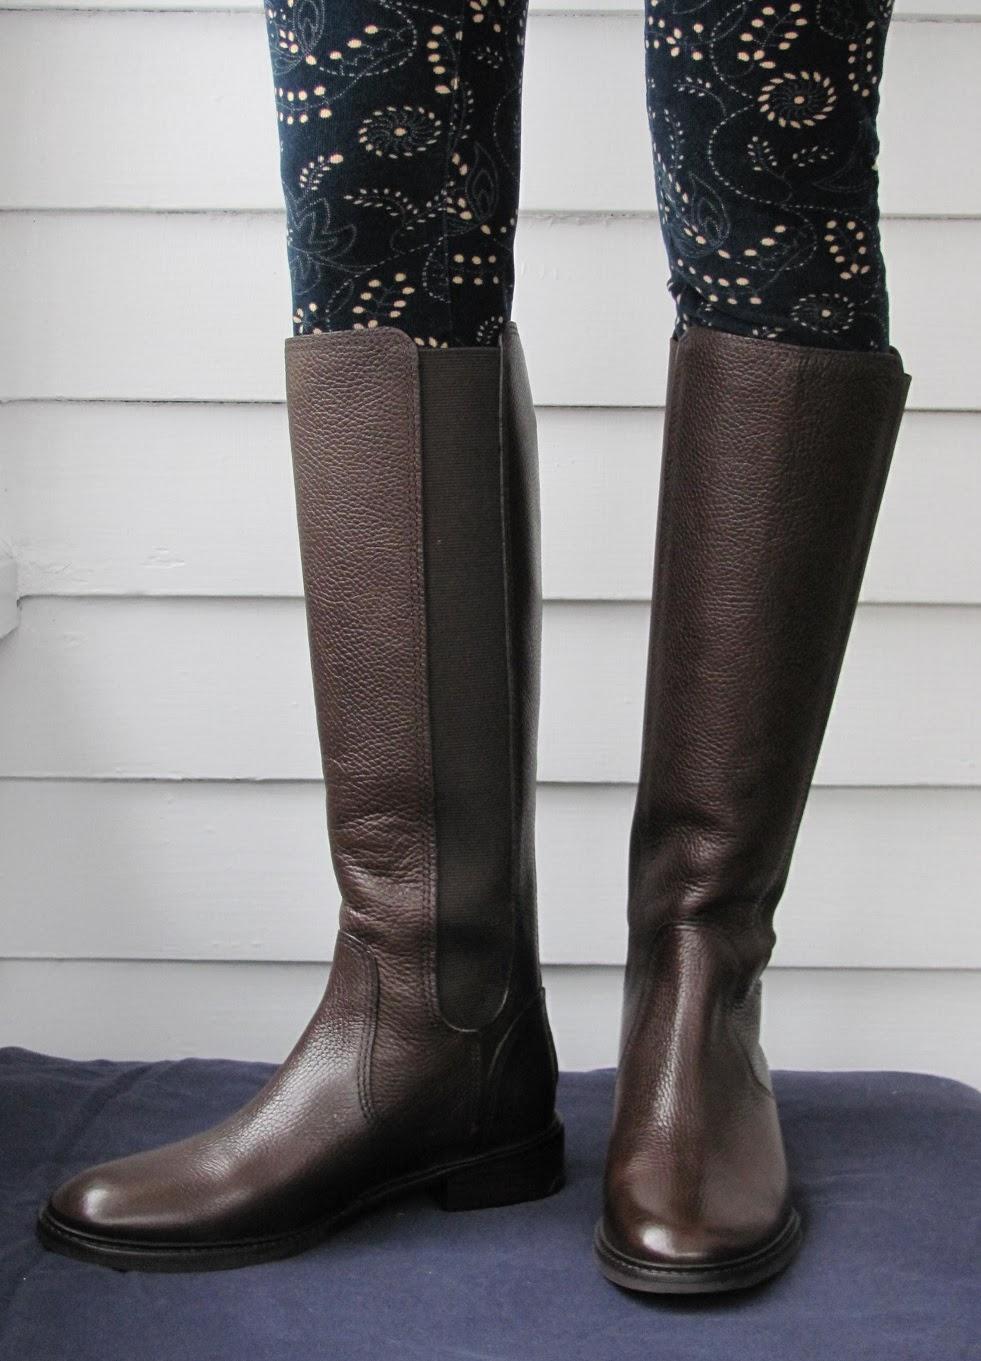 Howdy Slim Riding Boots For Thin Calves Tory Burch Christy